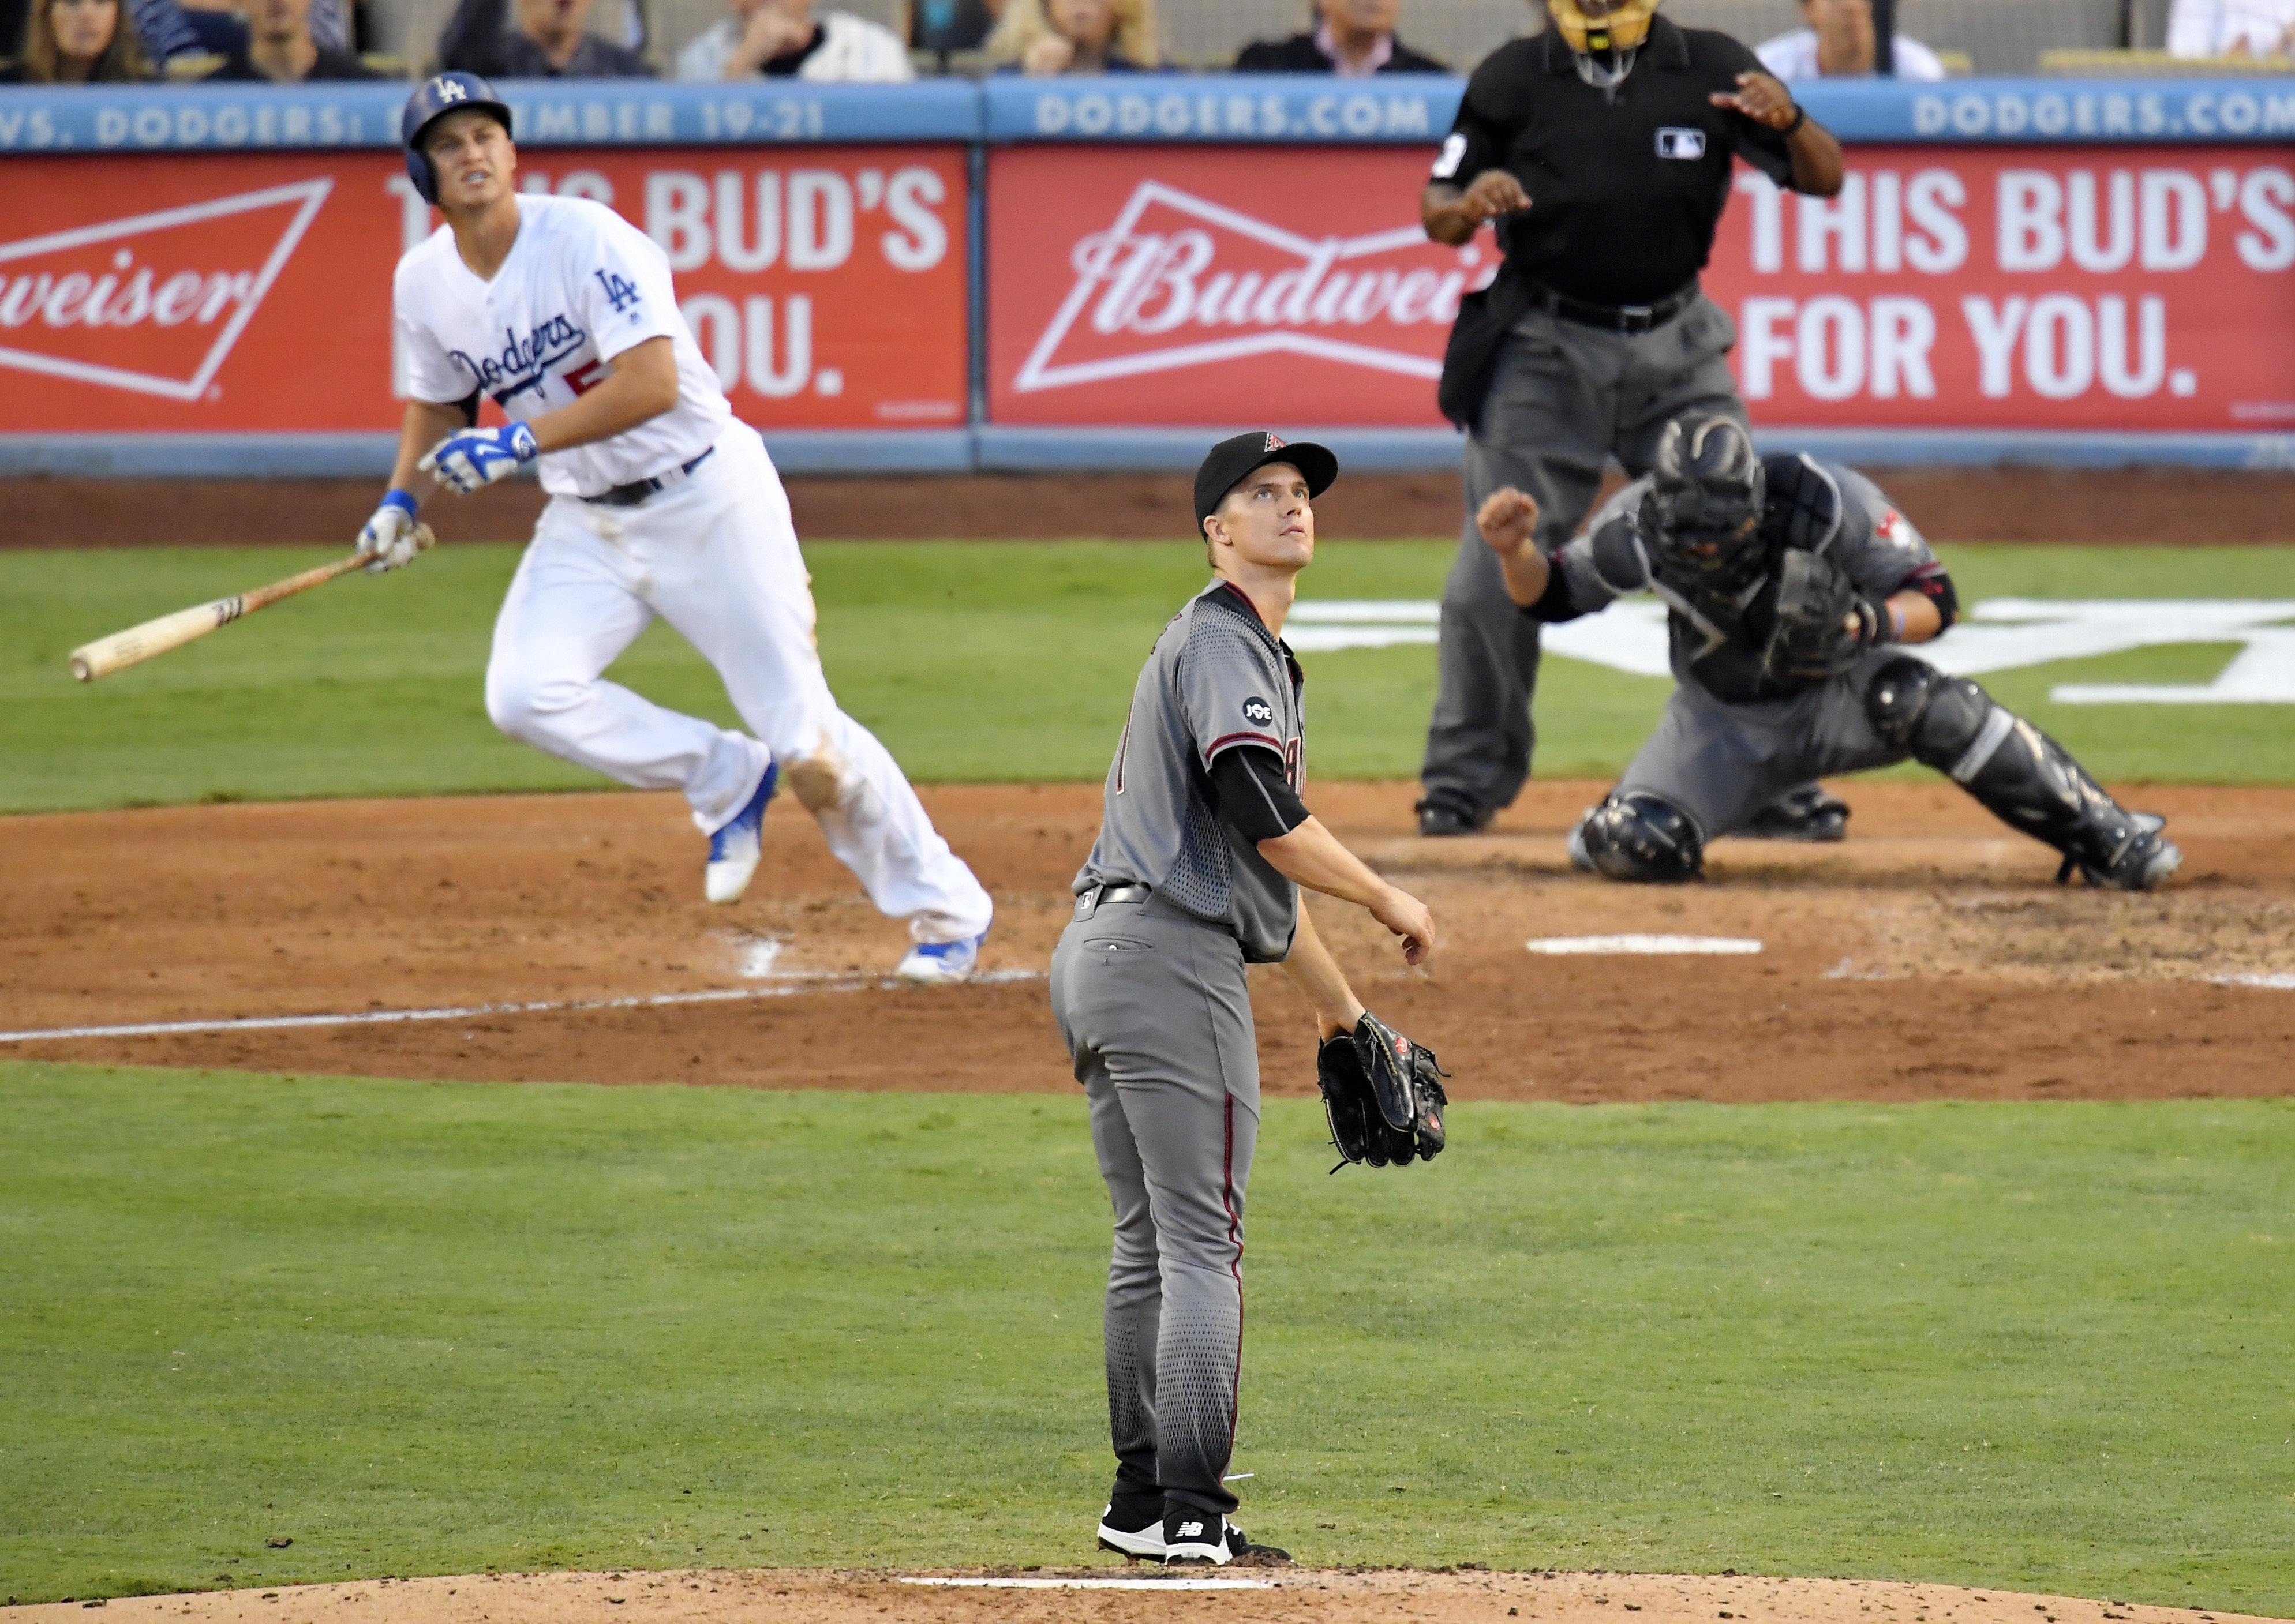 Los Angeles Dodgers' Corey Seager watches his three-run home run, along with Arizona Diamondbacks starting pitcher Zack Greinke, center, and catcher Welington Castillo during the fifth inning of a baseball game, Monday, Sept. 5, 2016, in Los Angeles. (AP